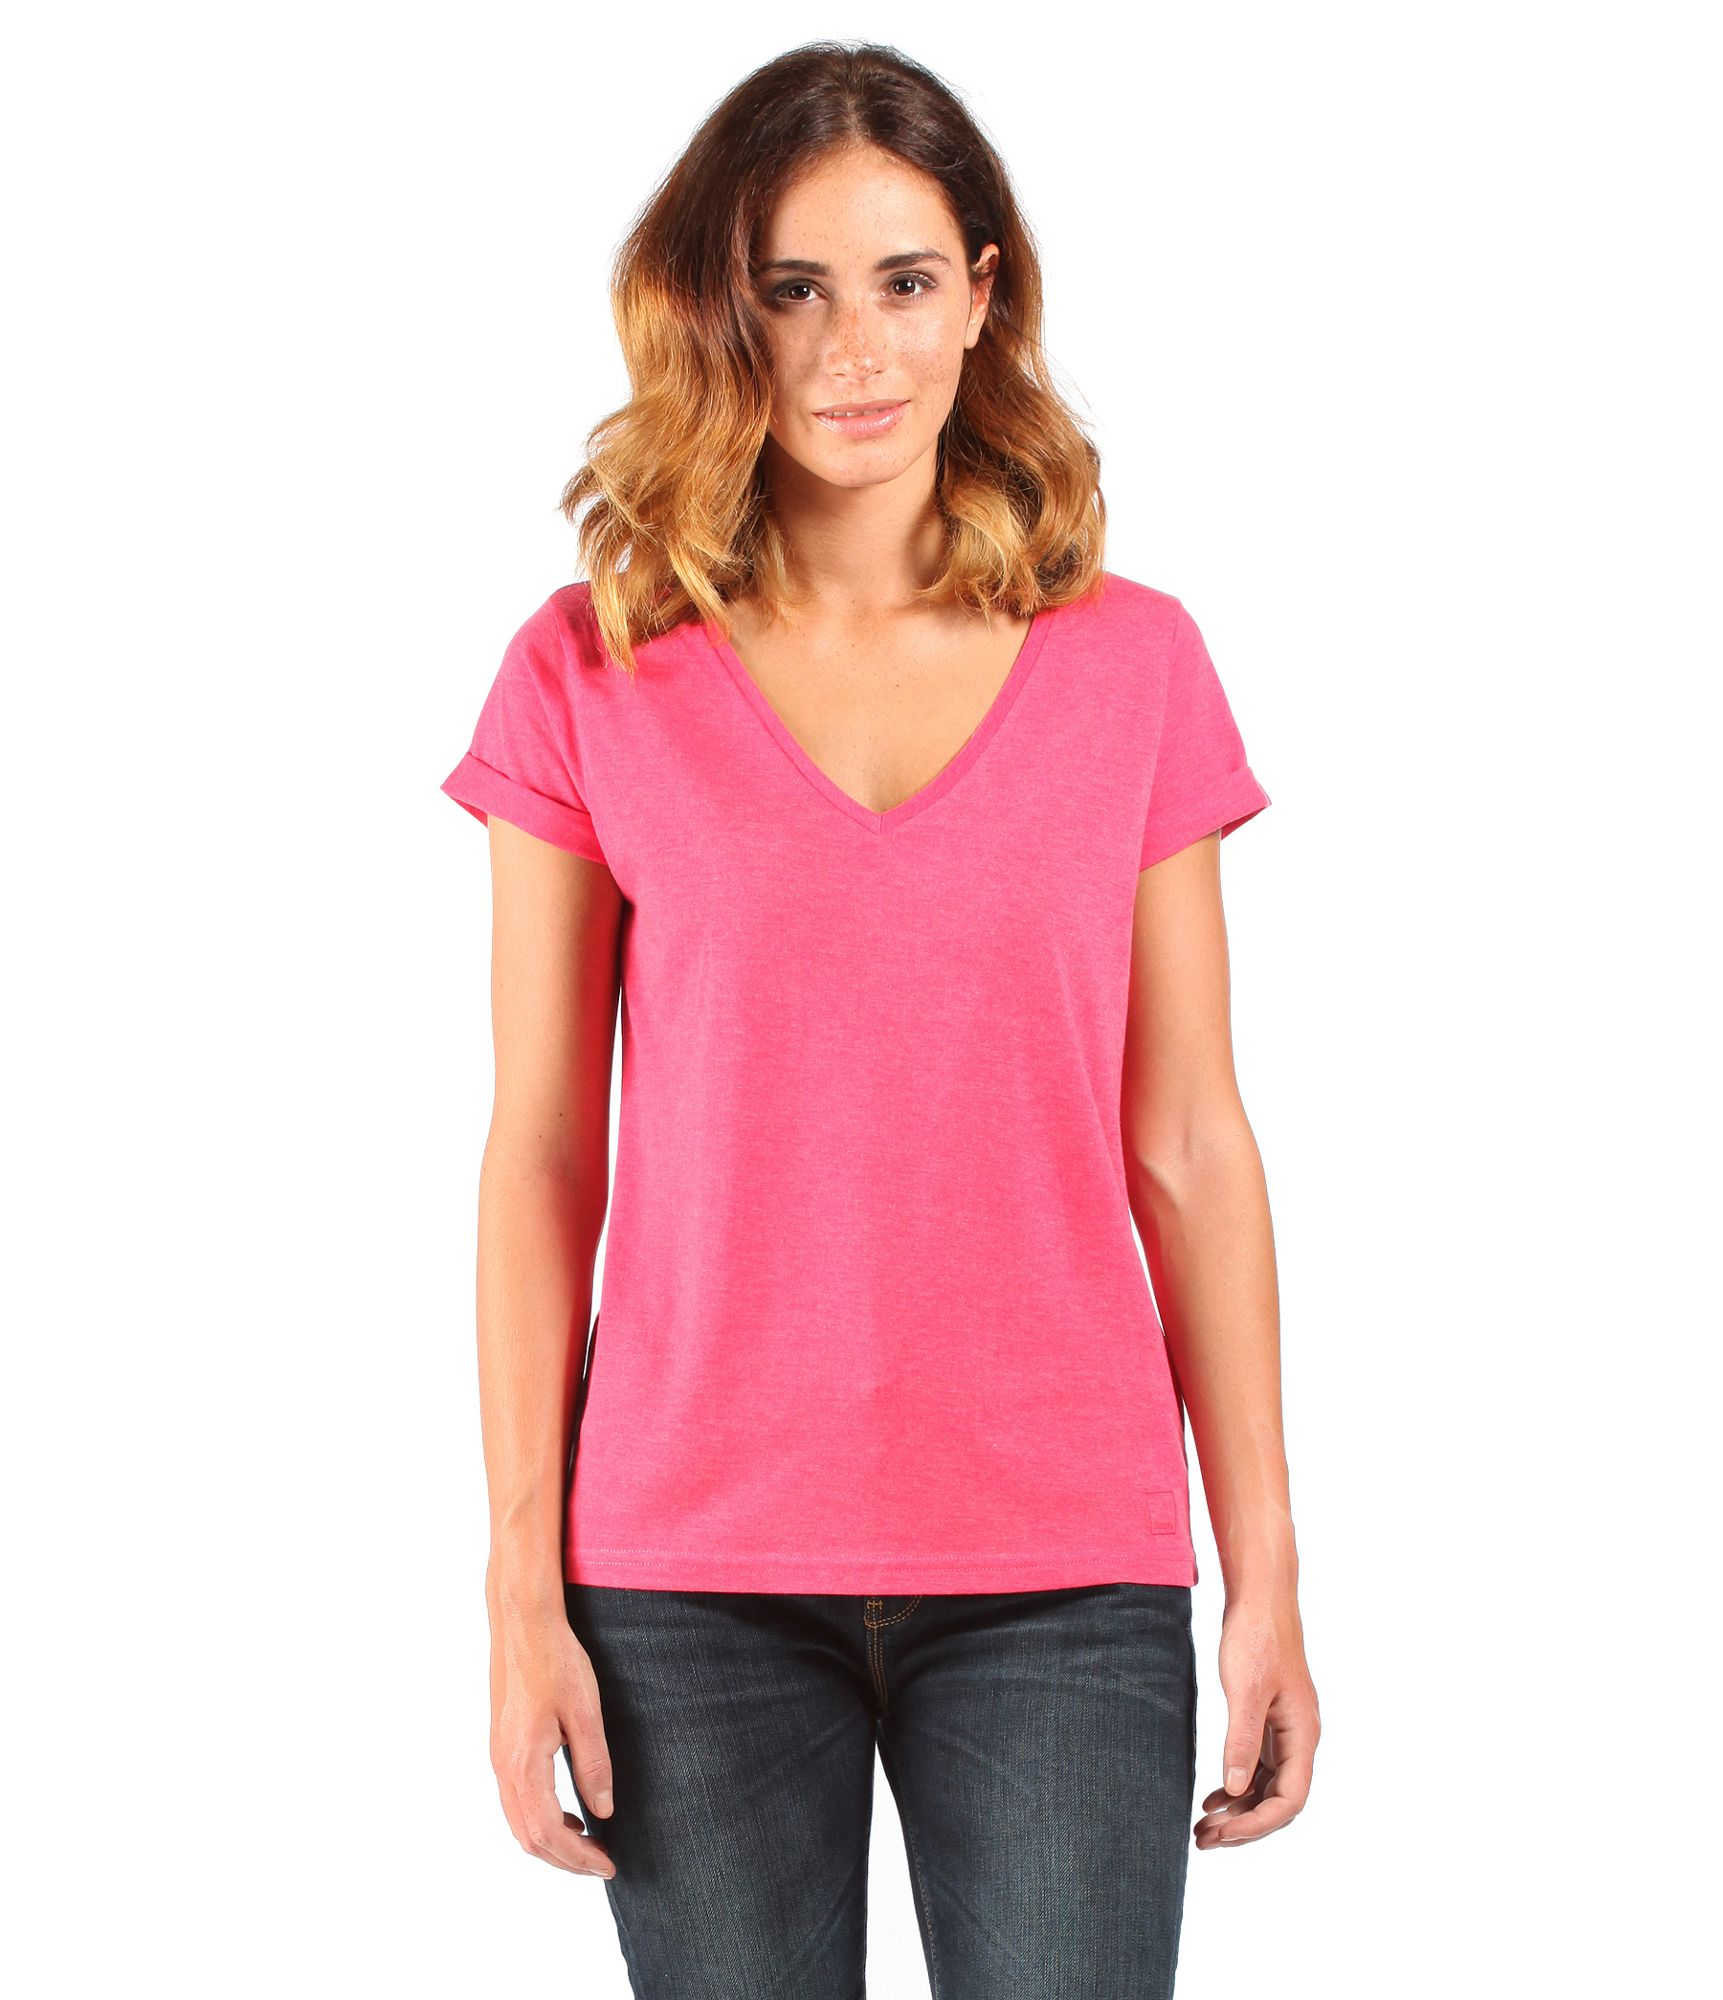 Bench womens the v tee v neck t shirt in pink lyst for Women s sunscreen shirts